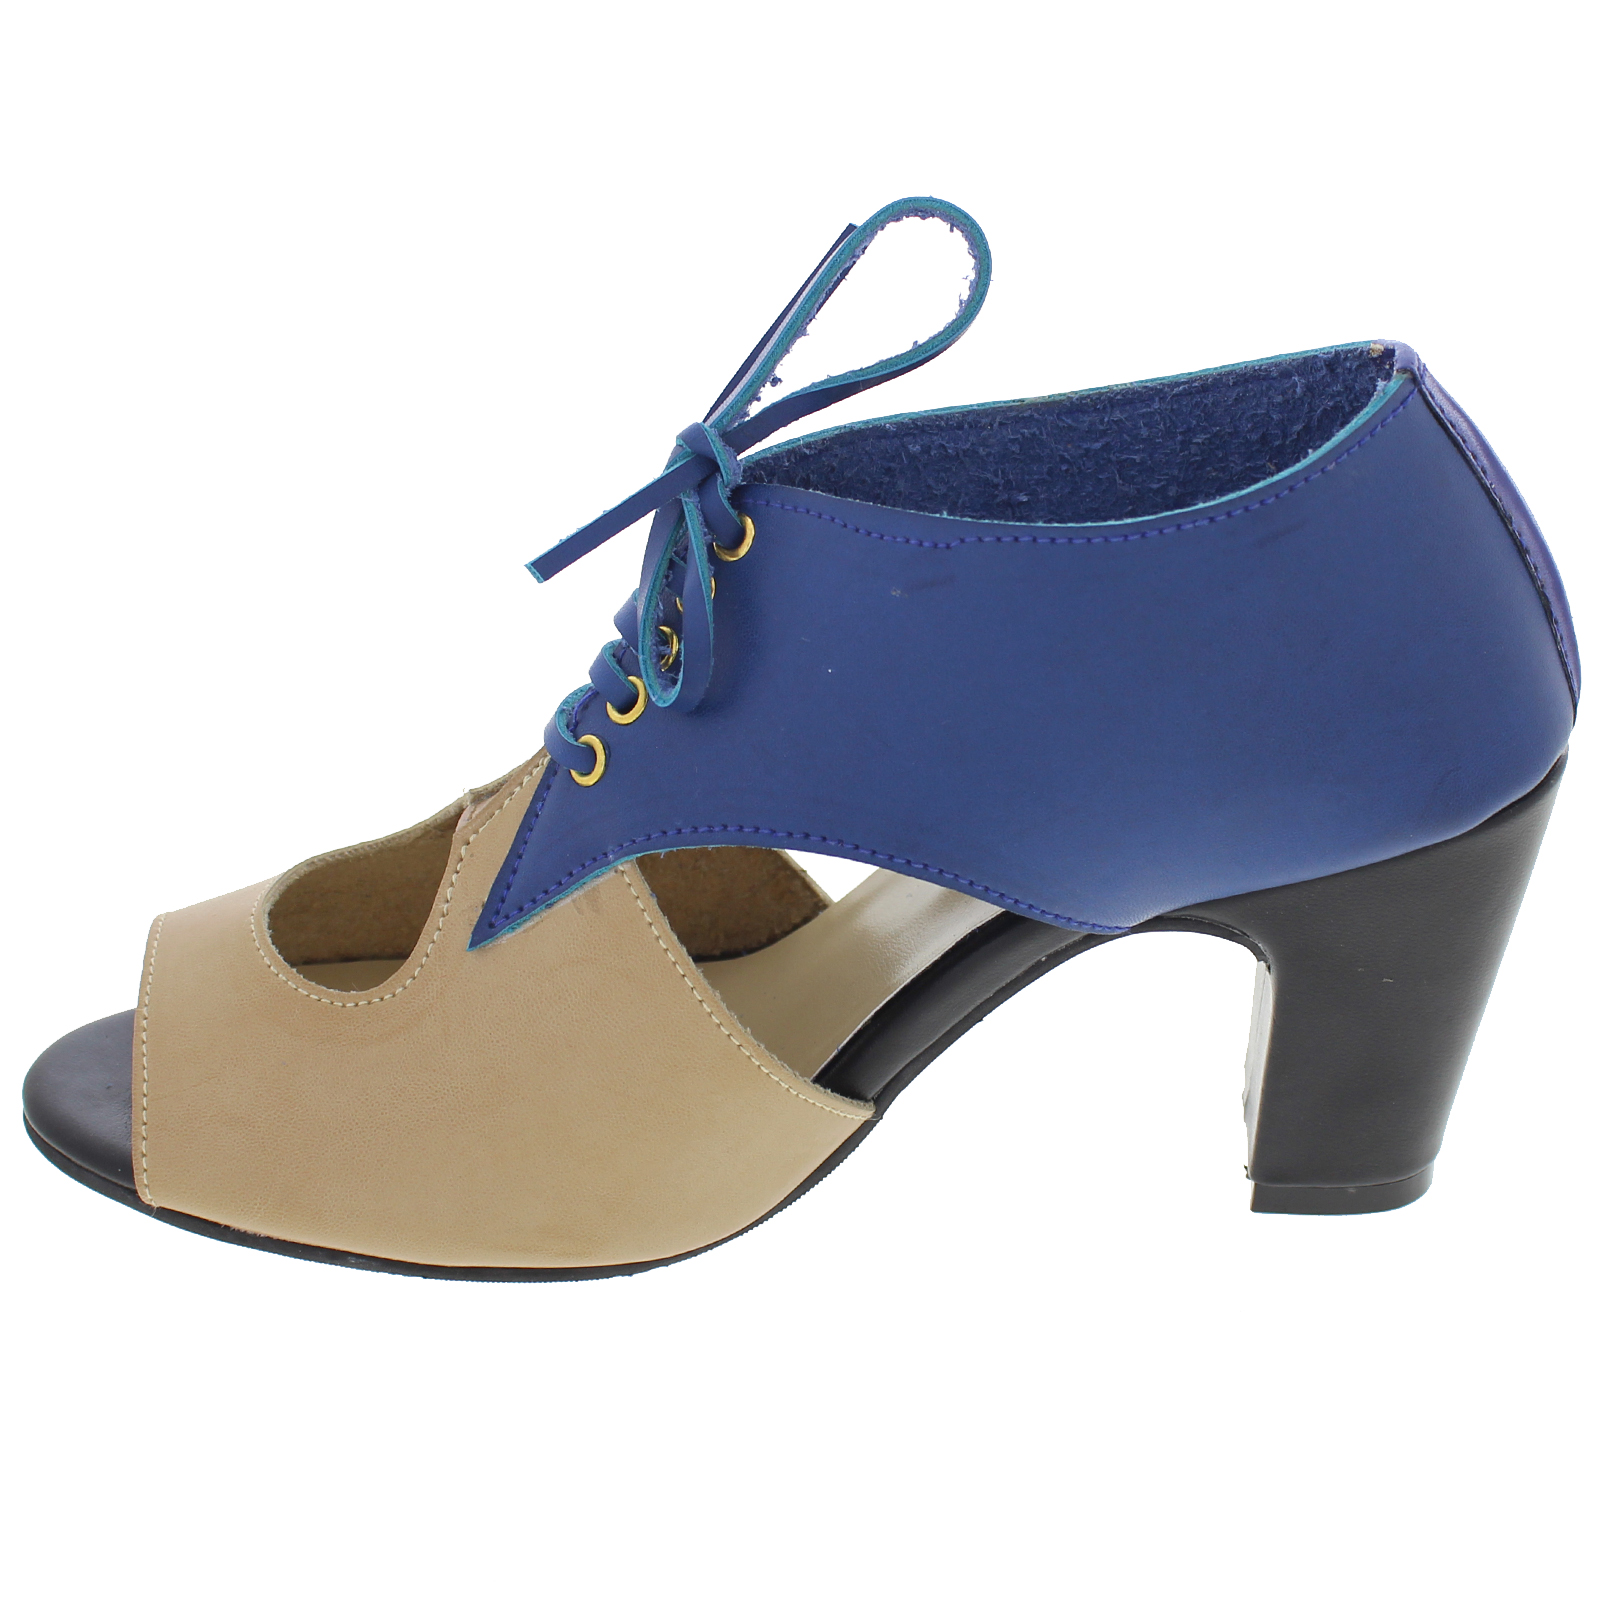 PAIO_DENISE BLUE & BEIGE CUT OUT BOOTS WITH TEXTURES_INR 2,890 (1)